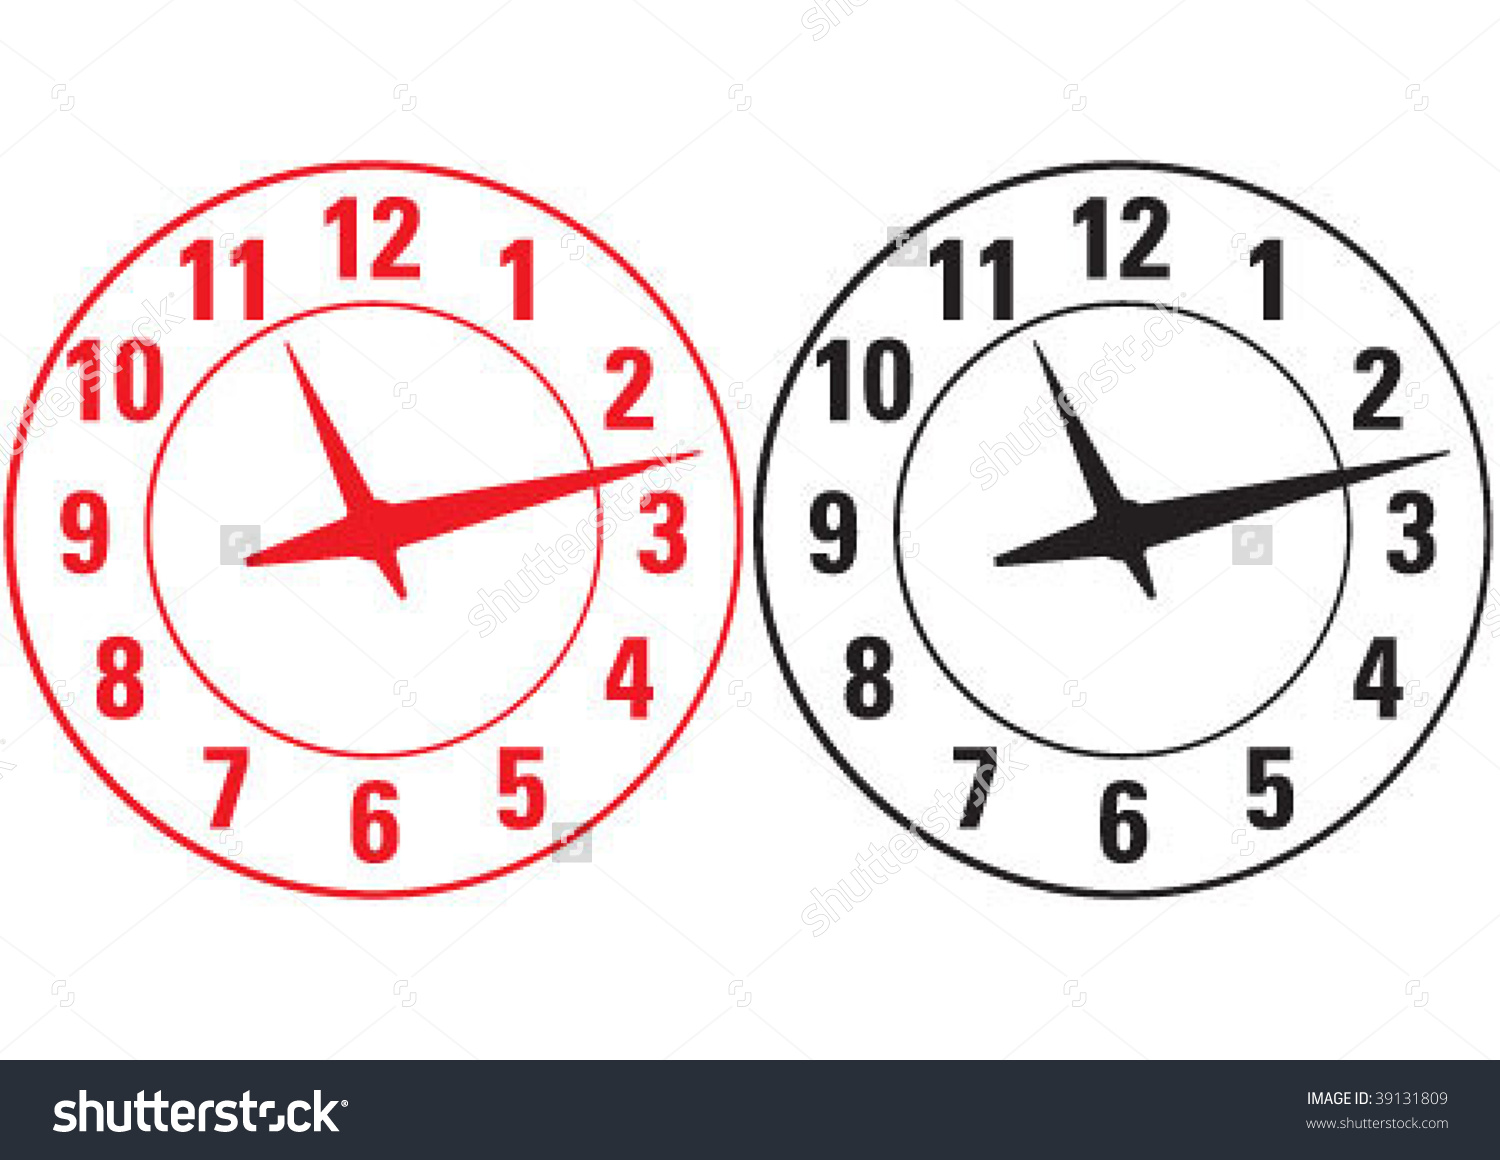 The Big Wall Watch Classic Stock Vector Illustration 39131809.